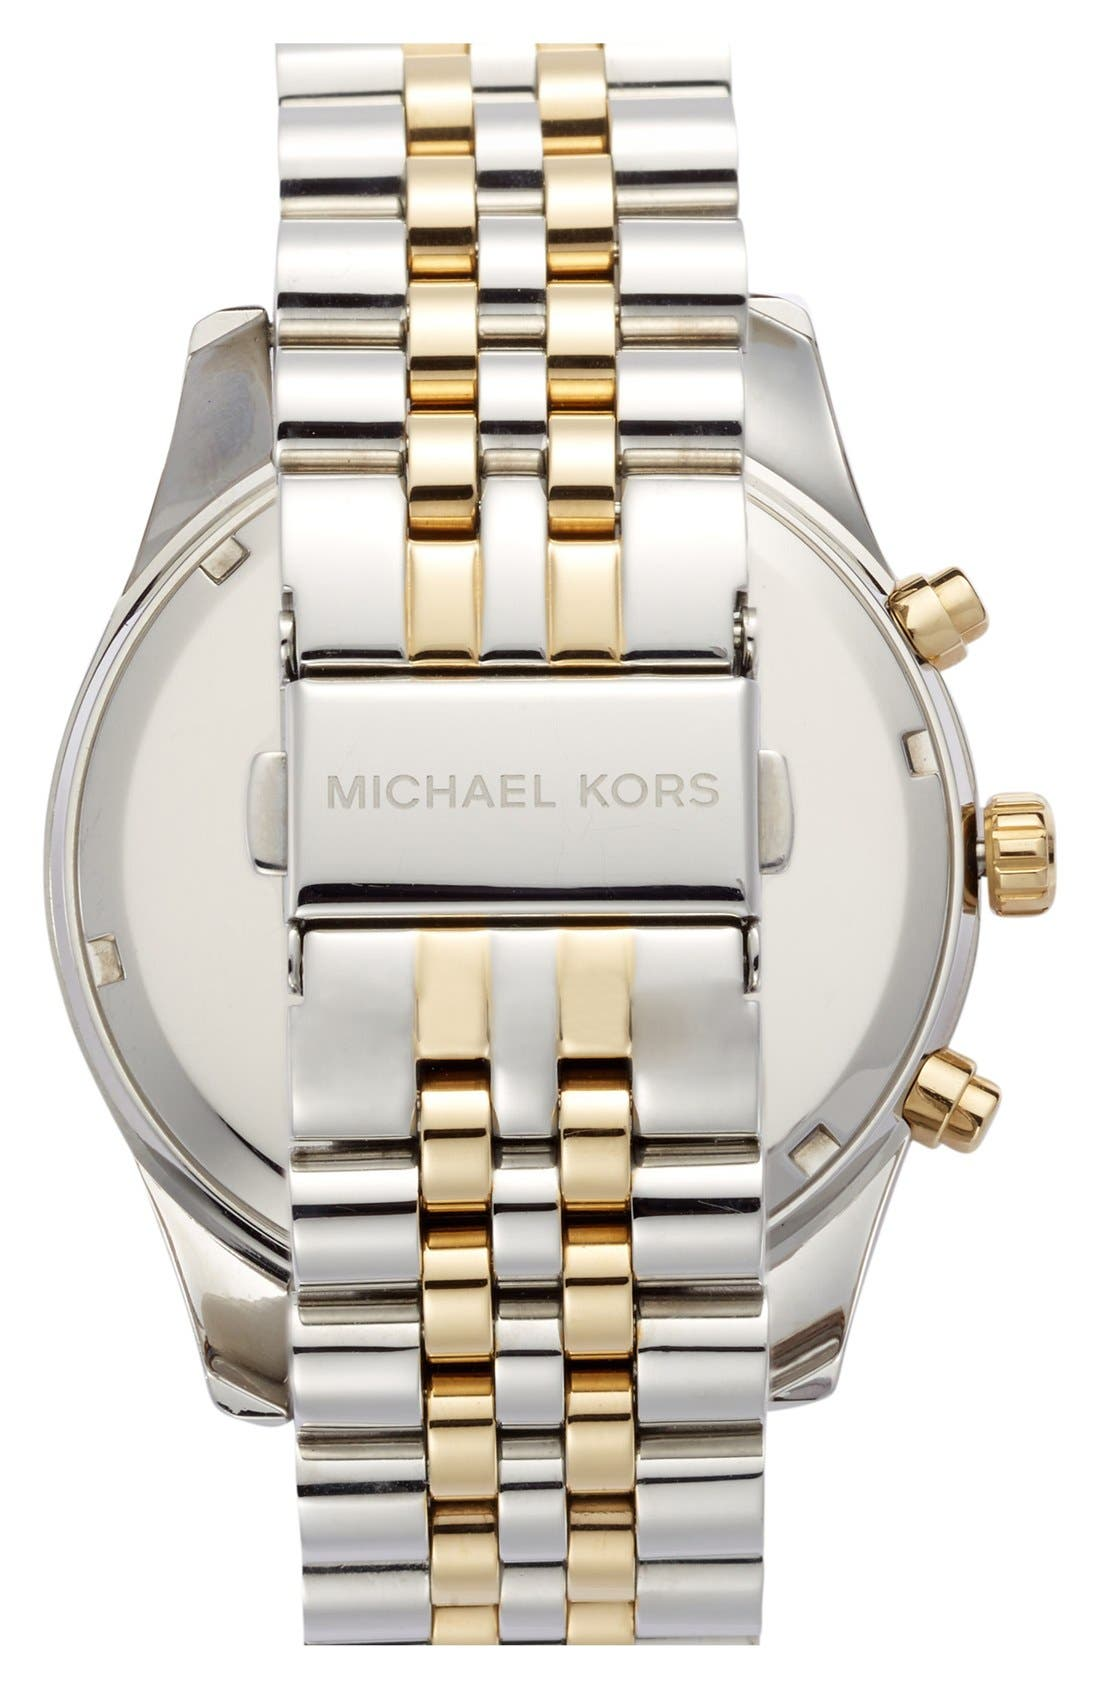 MICHAEL KORS,                             'Large Lexington' Chronograph Bracelet Watch, 45mm,                             Alternate thumbnail 4, color,                             GOLD/ BLACK